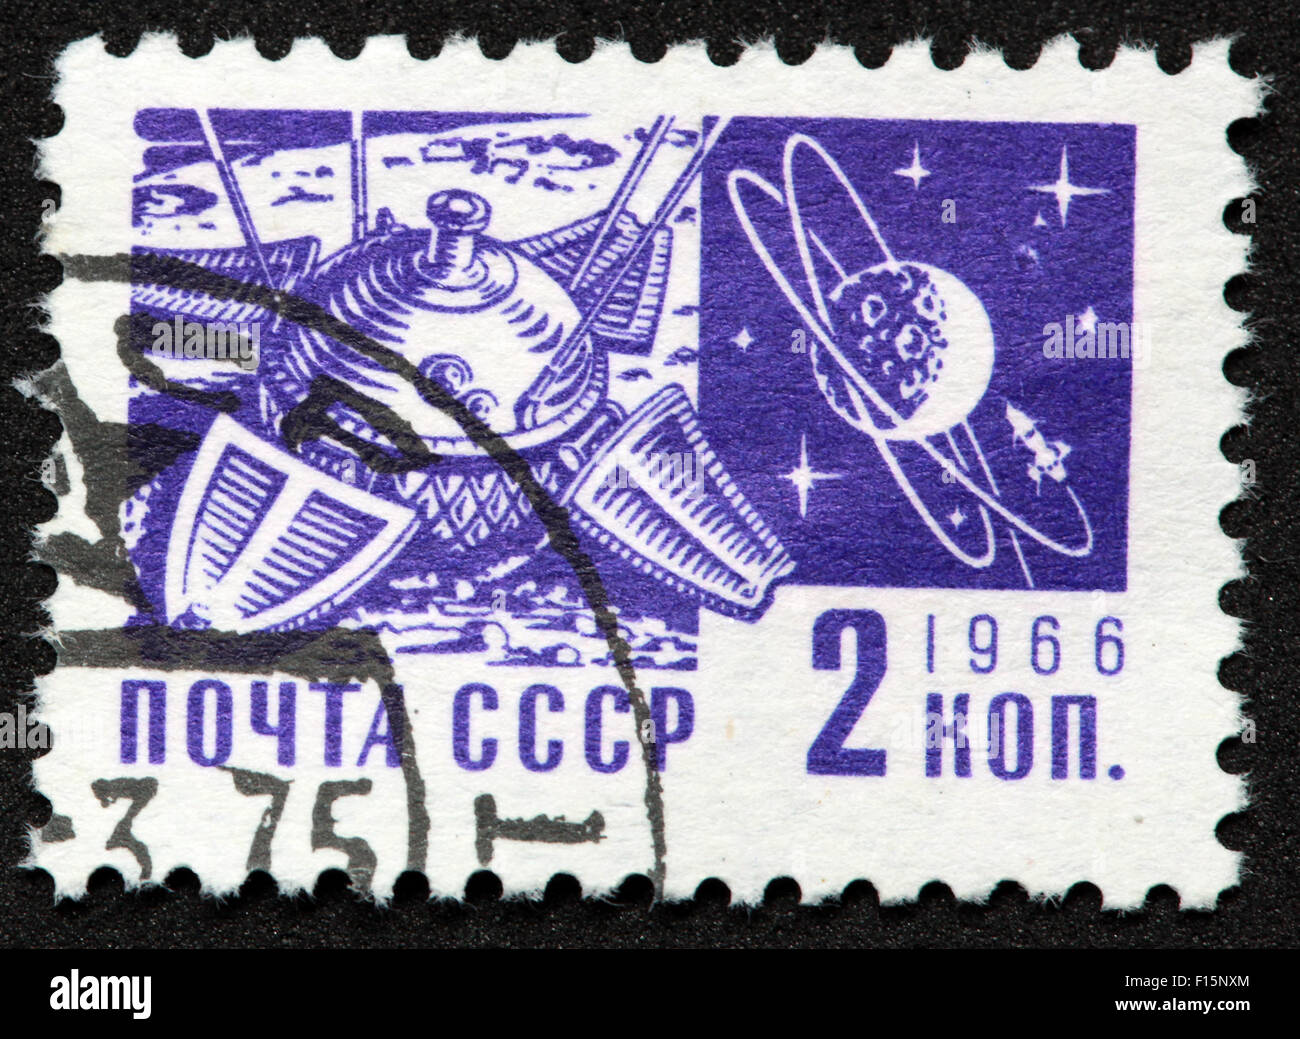 International Post,star,Used and Postmarked,Used,and,postmarked,perforated,stamp,Used,and,postmarked,Stamp,post,posting,mail,hobby,perforation,mark,postage,stamp,print,stamp,cancelled,stamp,payment,correspondence,postman,collection,collector,phila,USSR,Soviet,Bloc,Block,East,Eastern,Europe,Russia,race,orbit,Yuri Gagarin,Planet,Satellite,Moscow,Russian,Gotonysmith,post,posting,mail,hobby,perforation,mark,postage,stamp,print,stamp,cancelled,canceled,stamp,payment,correspondence,postman,collection,collector,philately,philatelist,letter,price,history,retro,Australian,Vintage,delivery,date,relationship,communication,Oz,Australia,DownUnder,classic,rare,unique,Austrailian,financial,investment,invest,value,British,empire,nation,canceled,printed,on,black,background,close-up,closeup,close,up,sent,send,philately,mailing,shipping,postoffice,office,isolated,circa,special,colour,color,postmarked,marked,airmail,aged,antique,retro,cutting,historic,old,stamps,collection,stamp collection,album,Timbre,Sello,Stempel,Selo,Buy Pictures of,Buy Images Of,Down Under,Black background